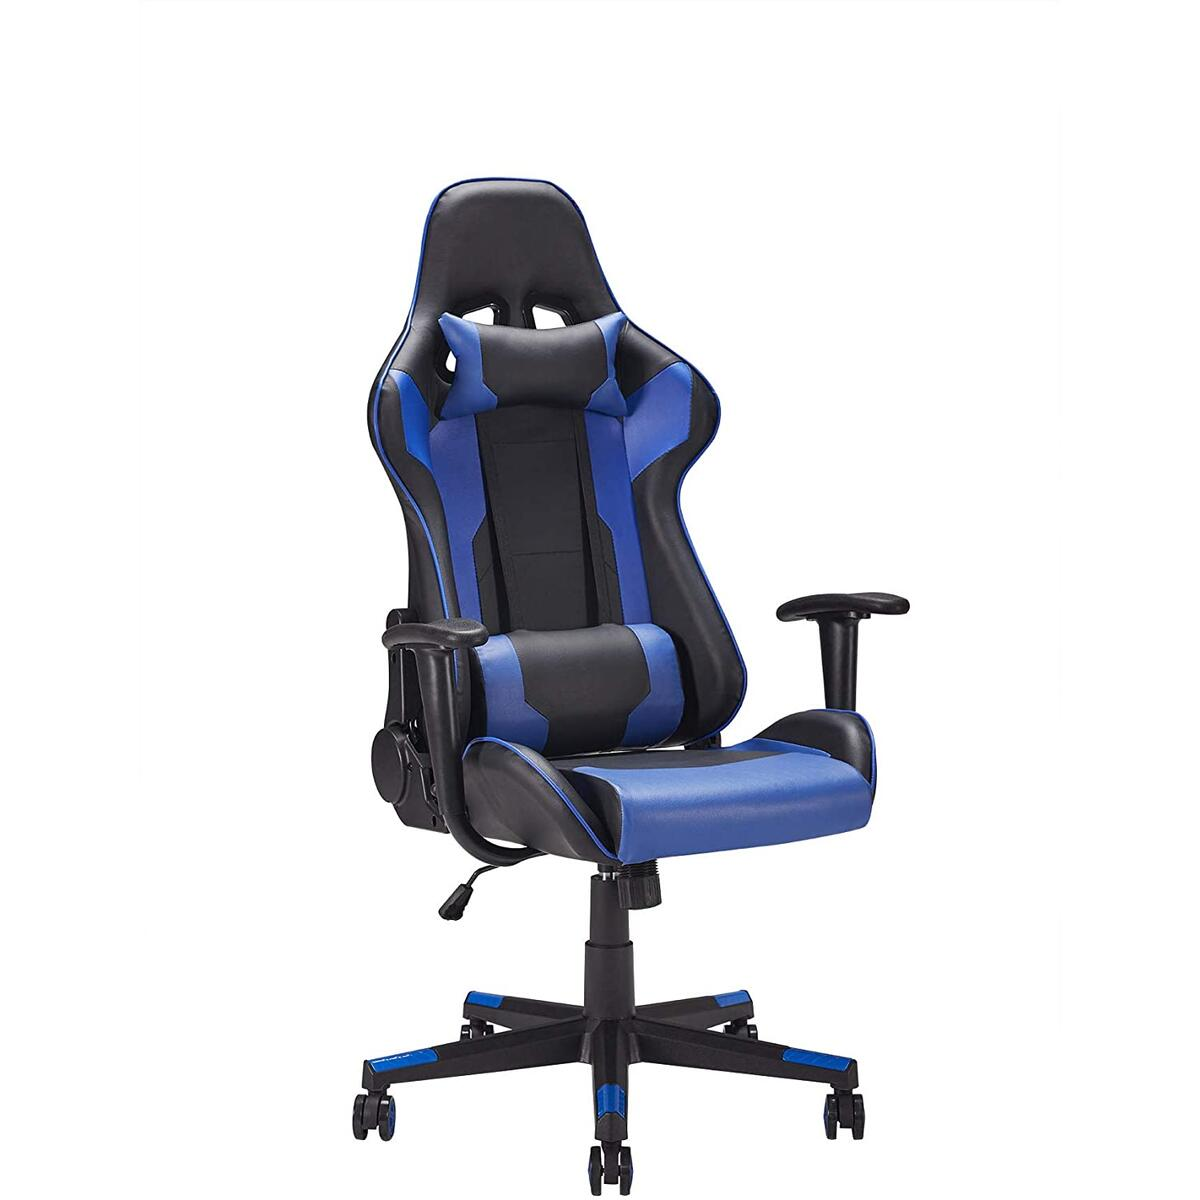 Ergonomic Design Racing Style Swivel Gaming Chair with Adjustable Height and Lumbar Support Black and Blue